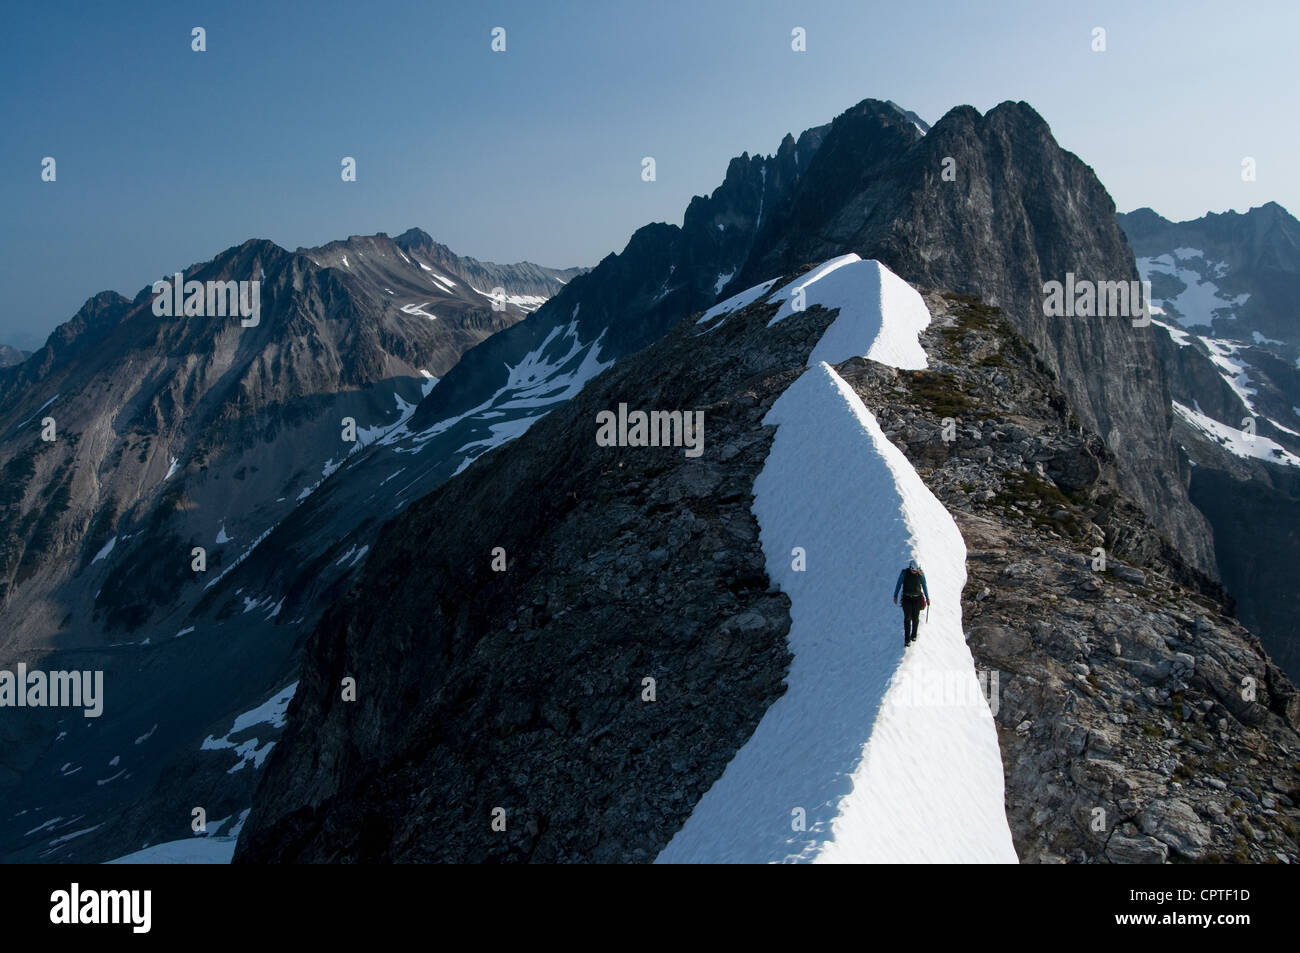 Female climber traversing snowy ridge, Redoubt Whatcom Traverse, North Cascades National Park, WA, USA - Stock Image